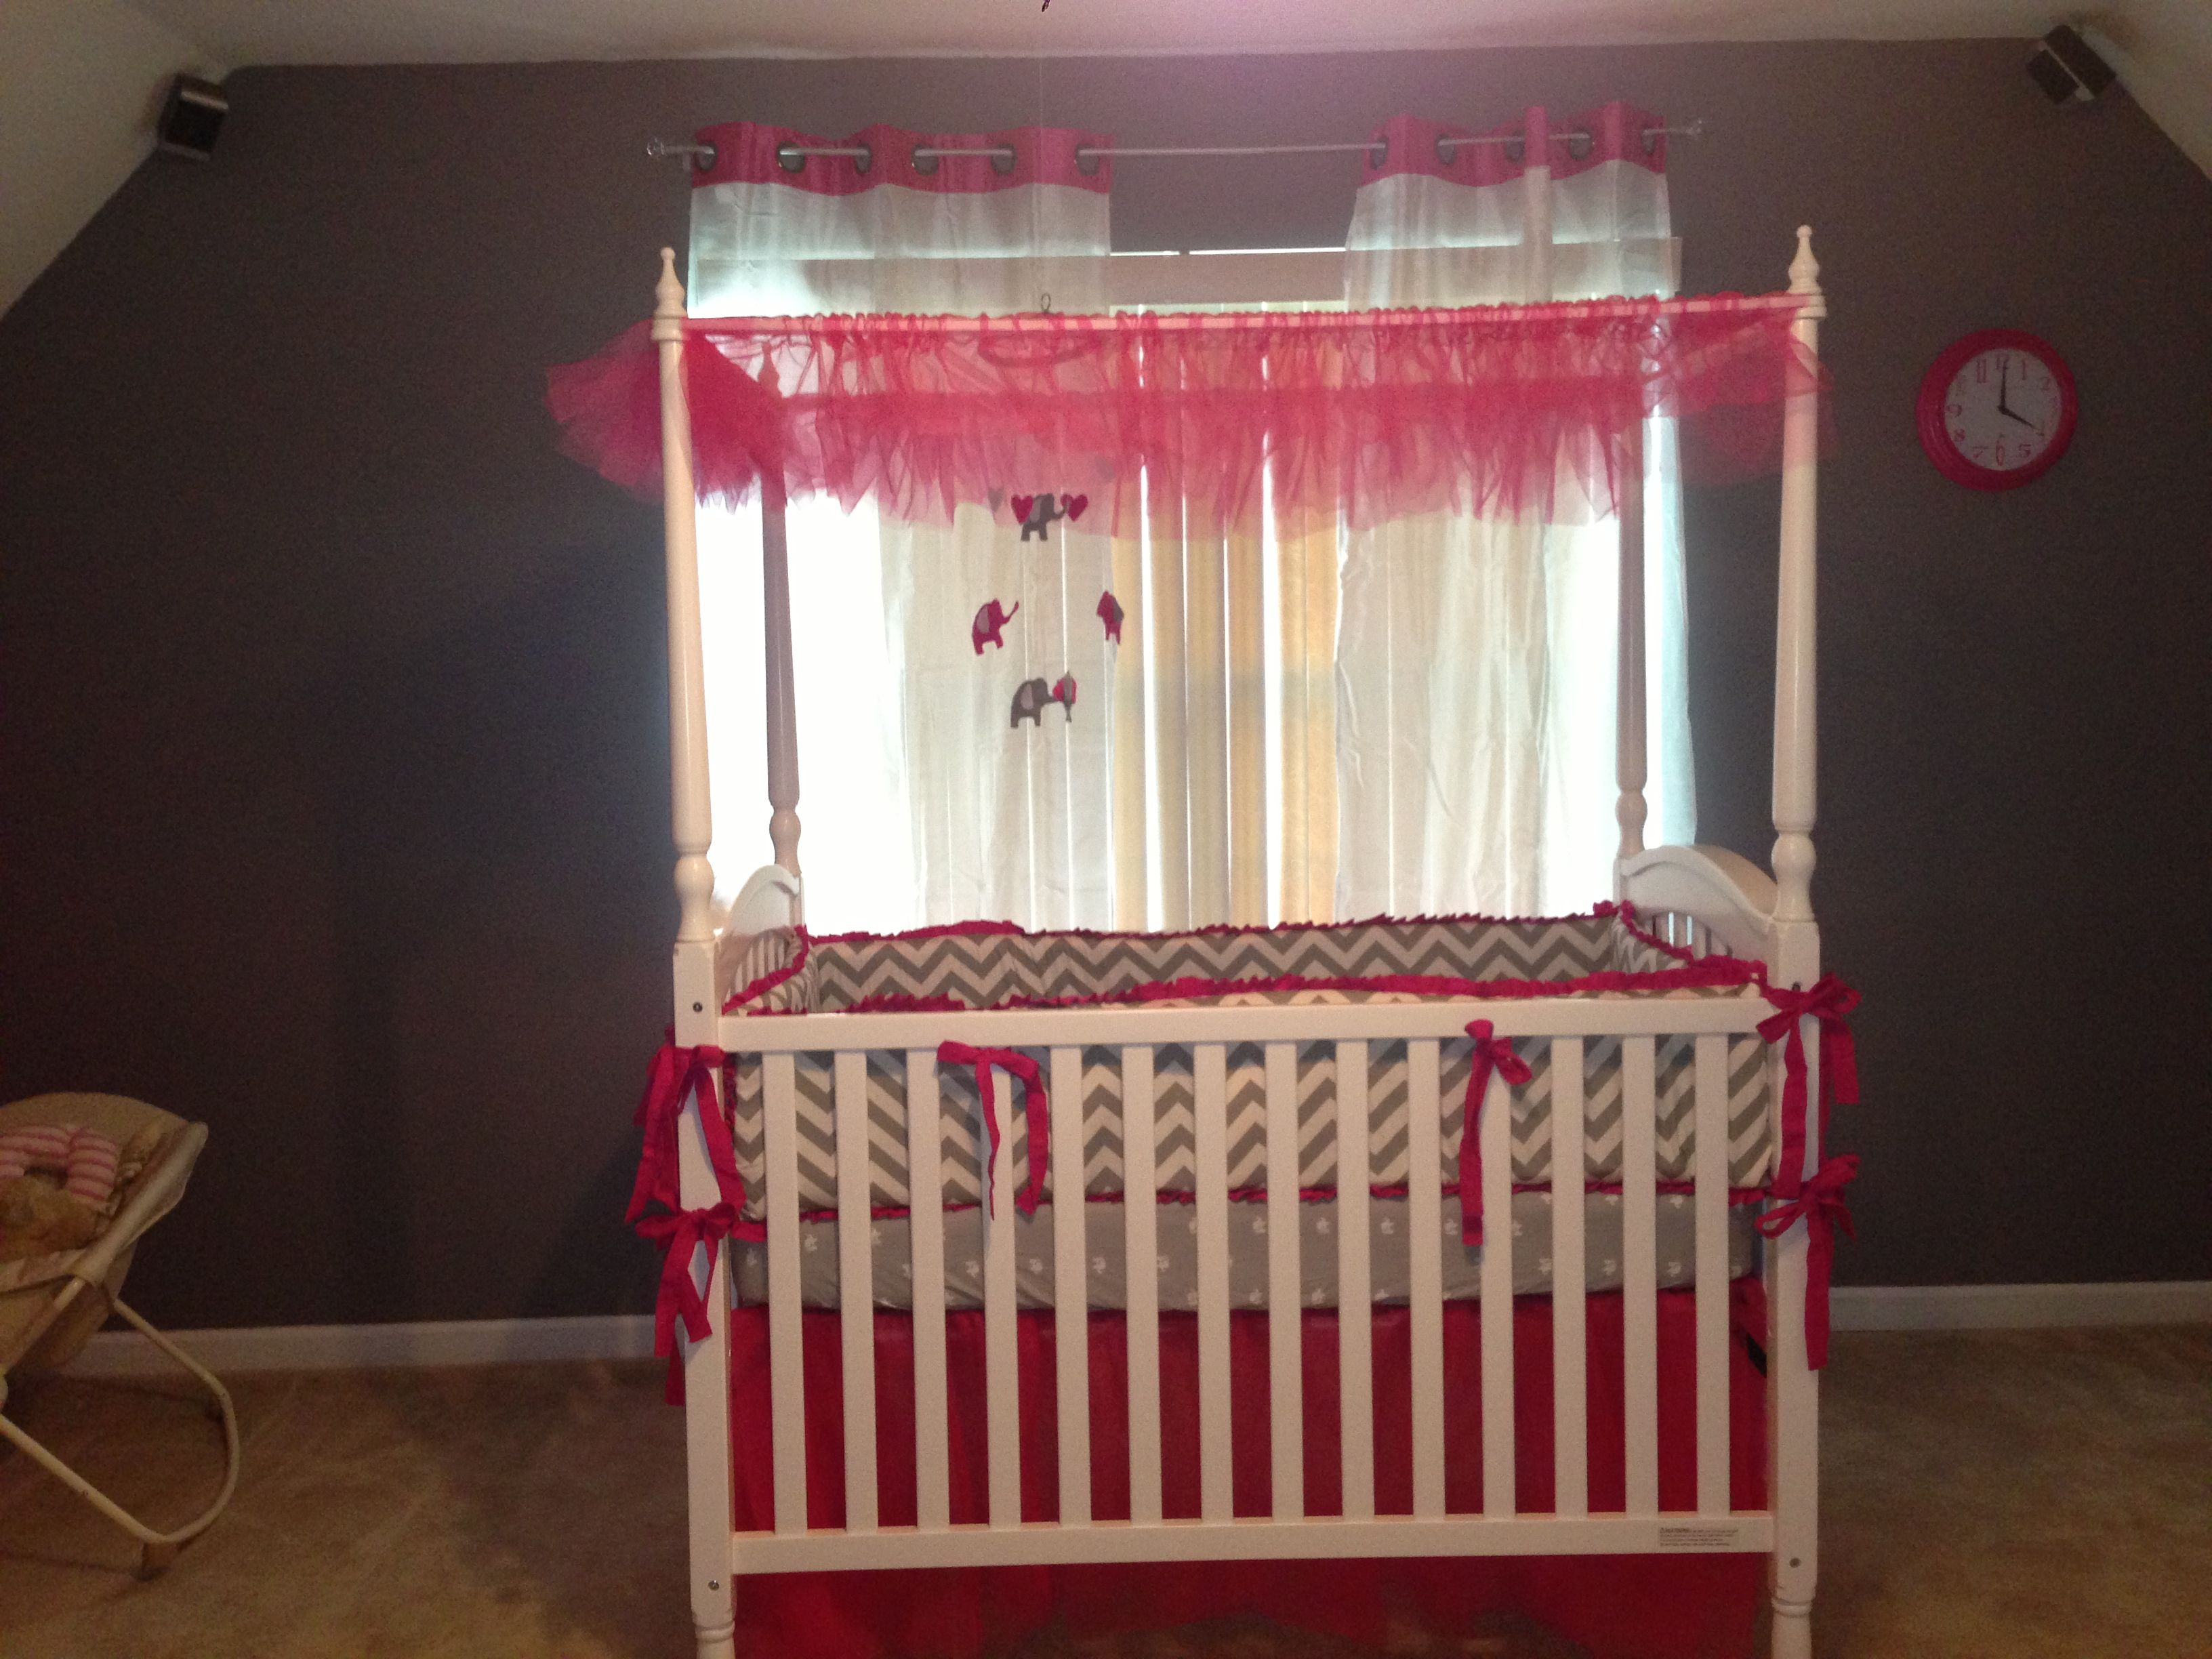 Love the tutu look around the top of the crib